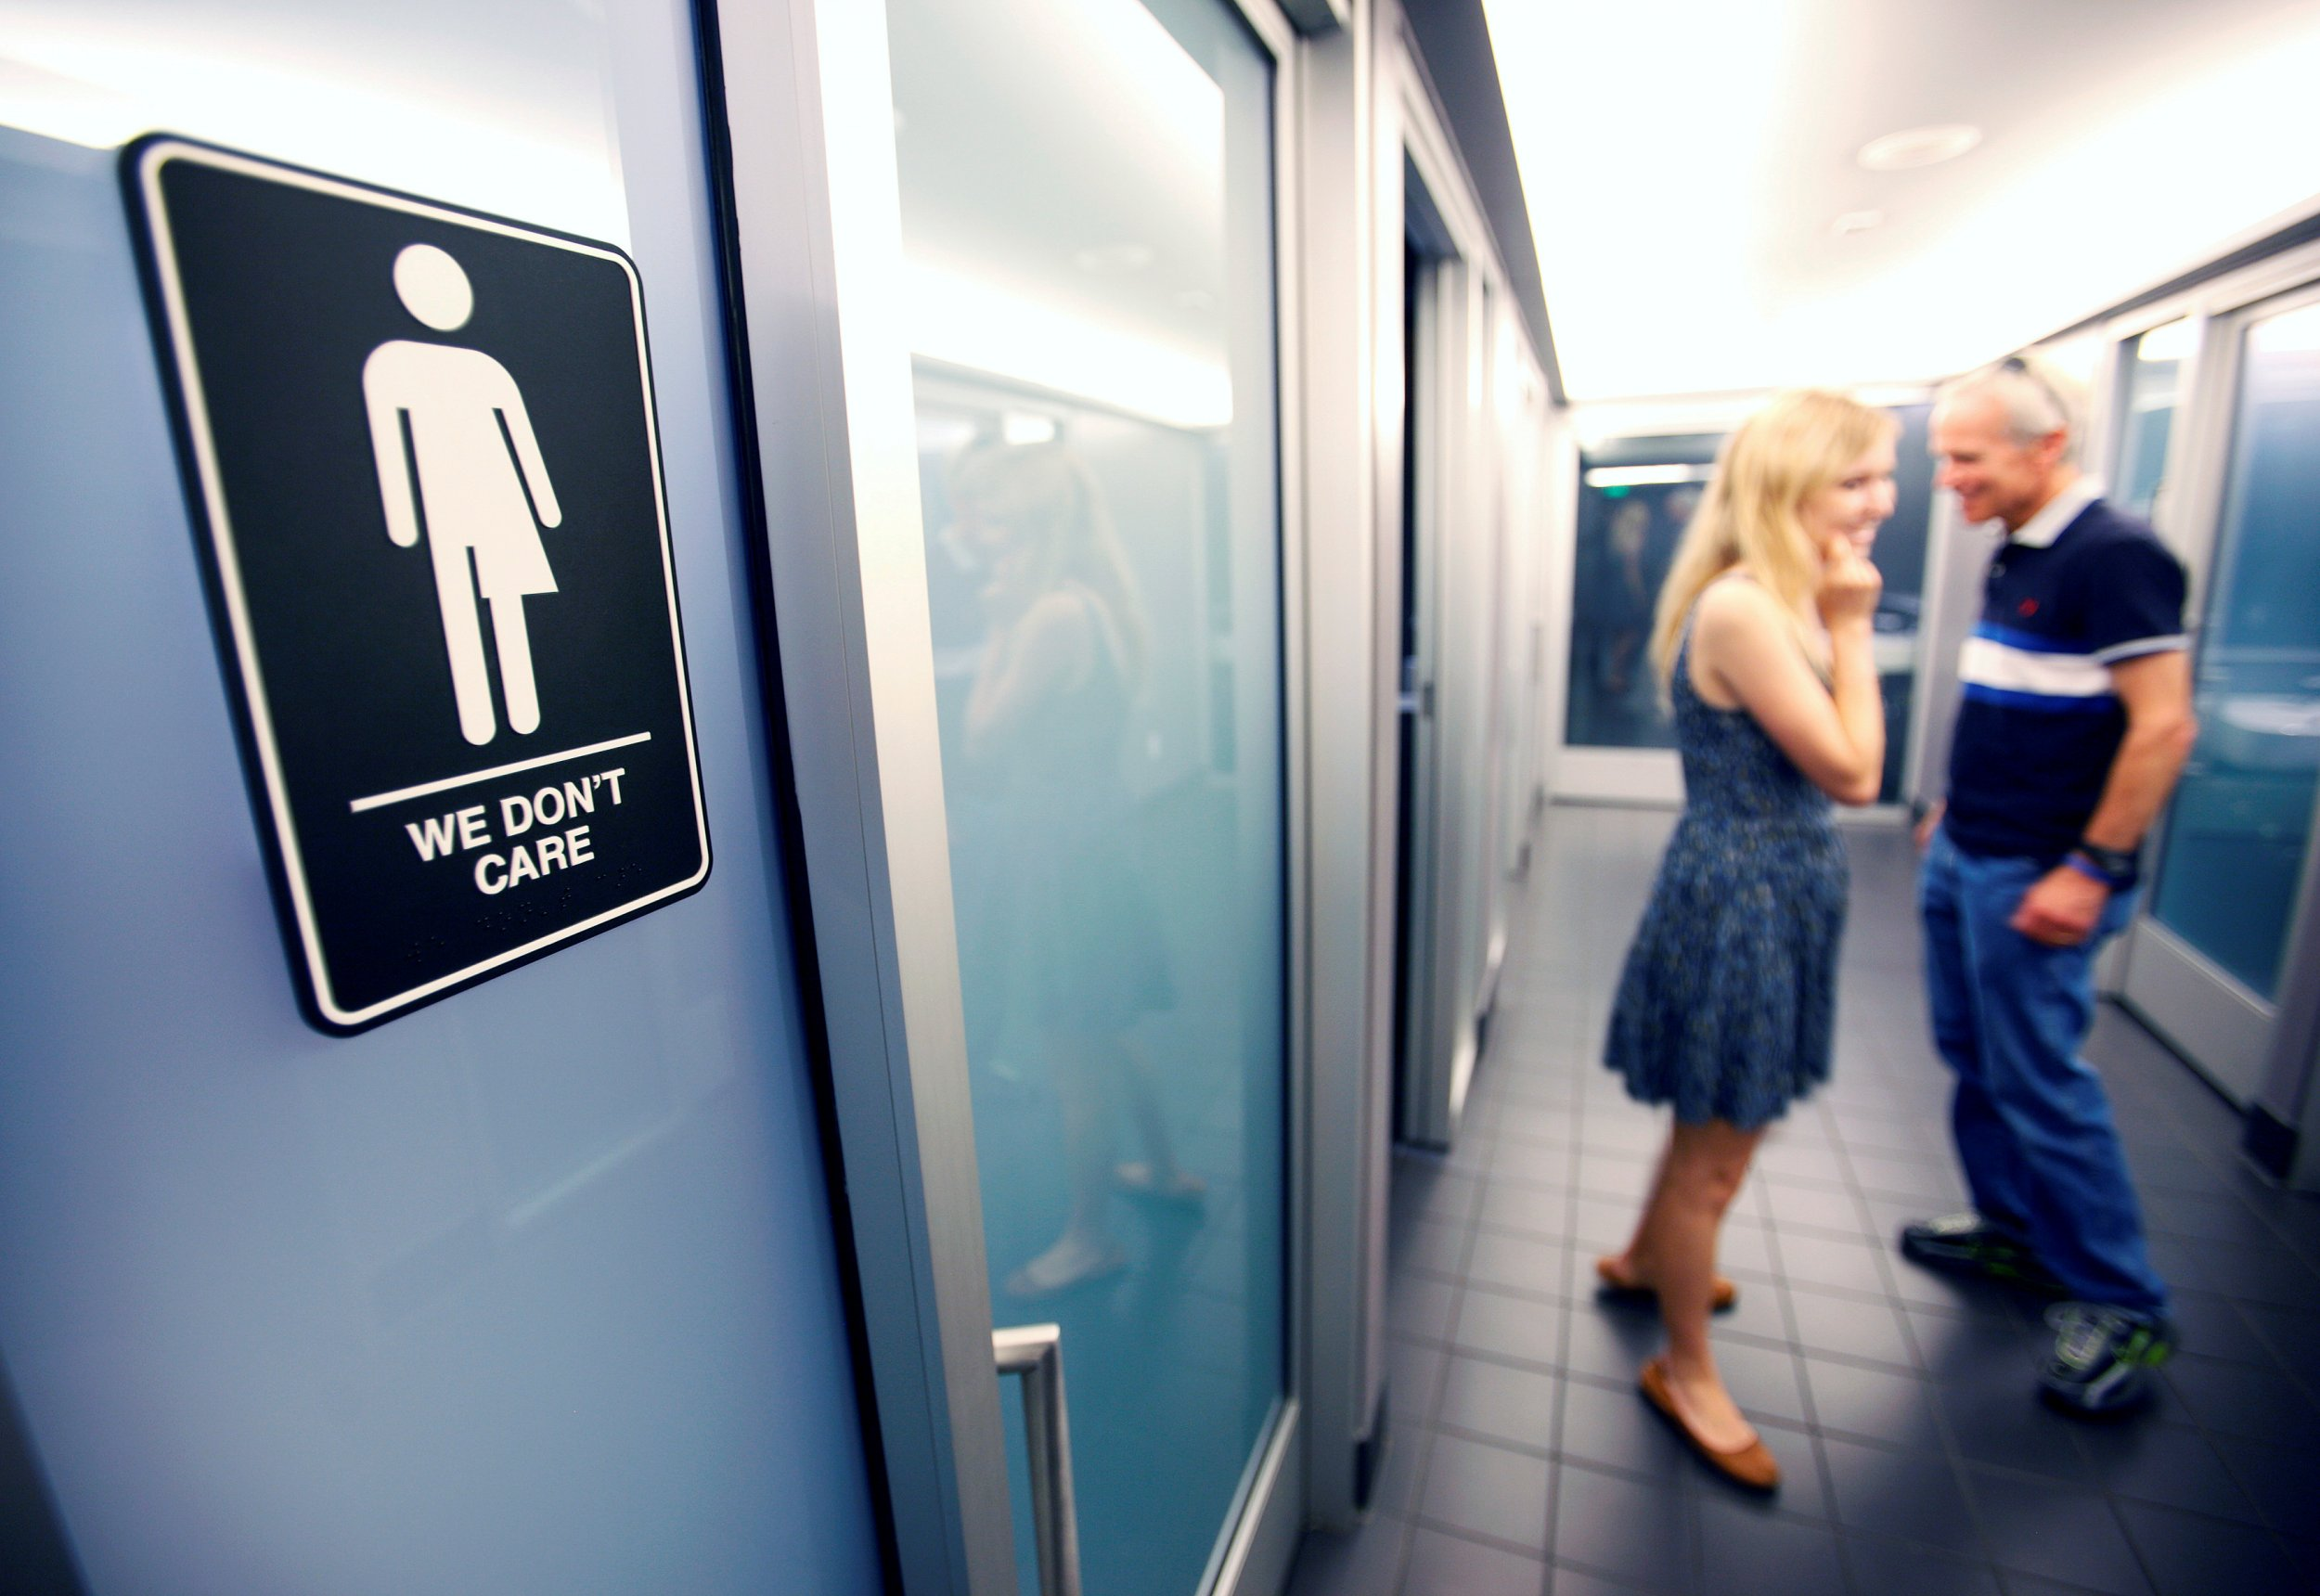 Why Gender Intolerance Has Ended Up In The Bathroom